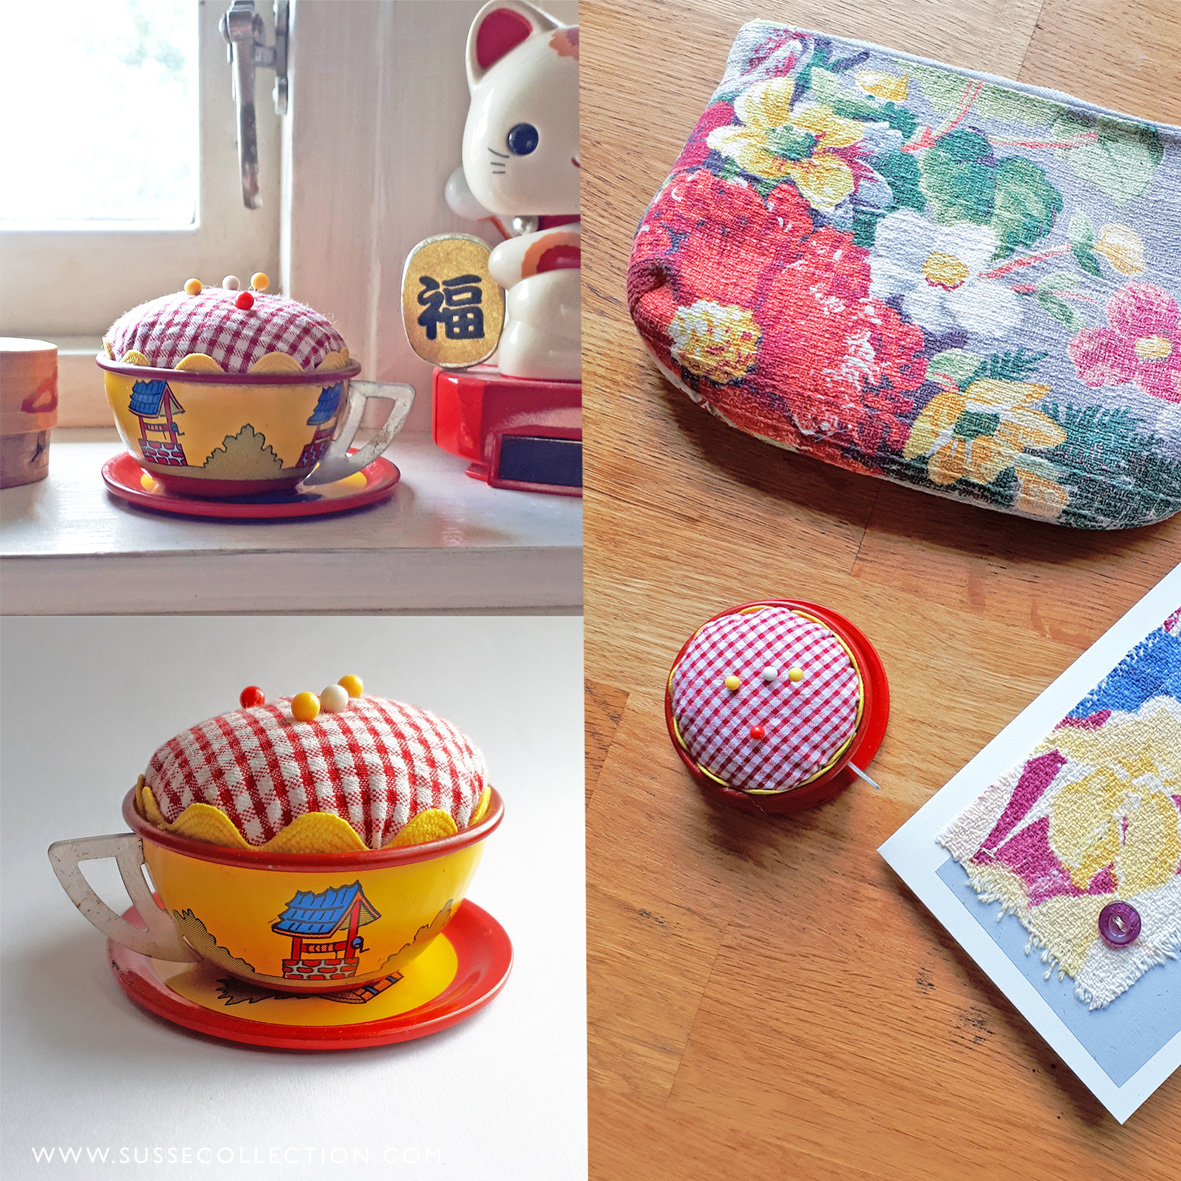 Susse Collection pincushion linda9 .jpg